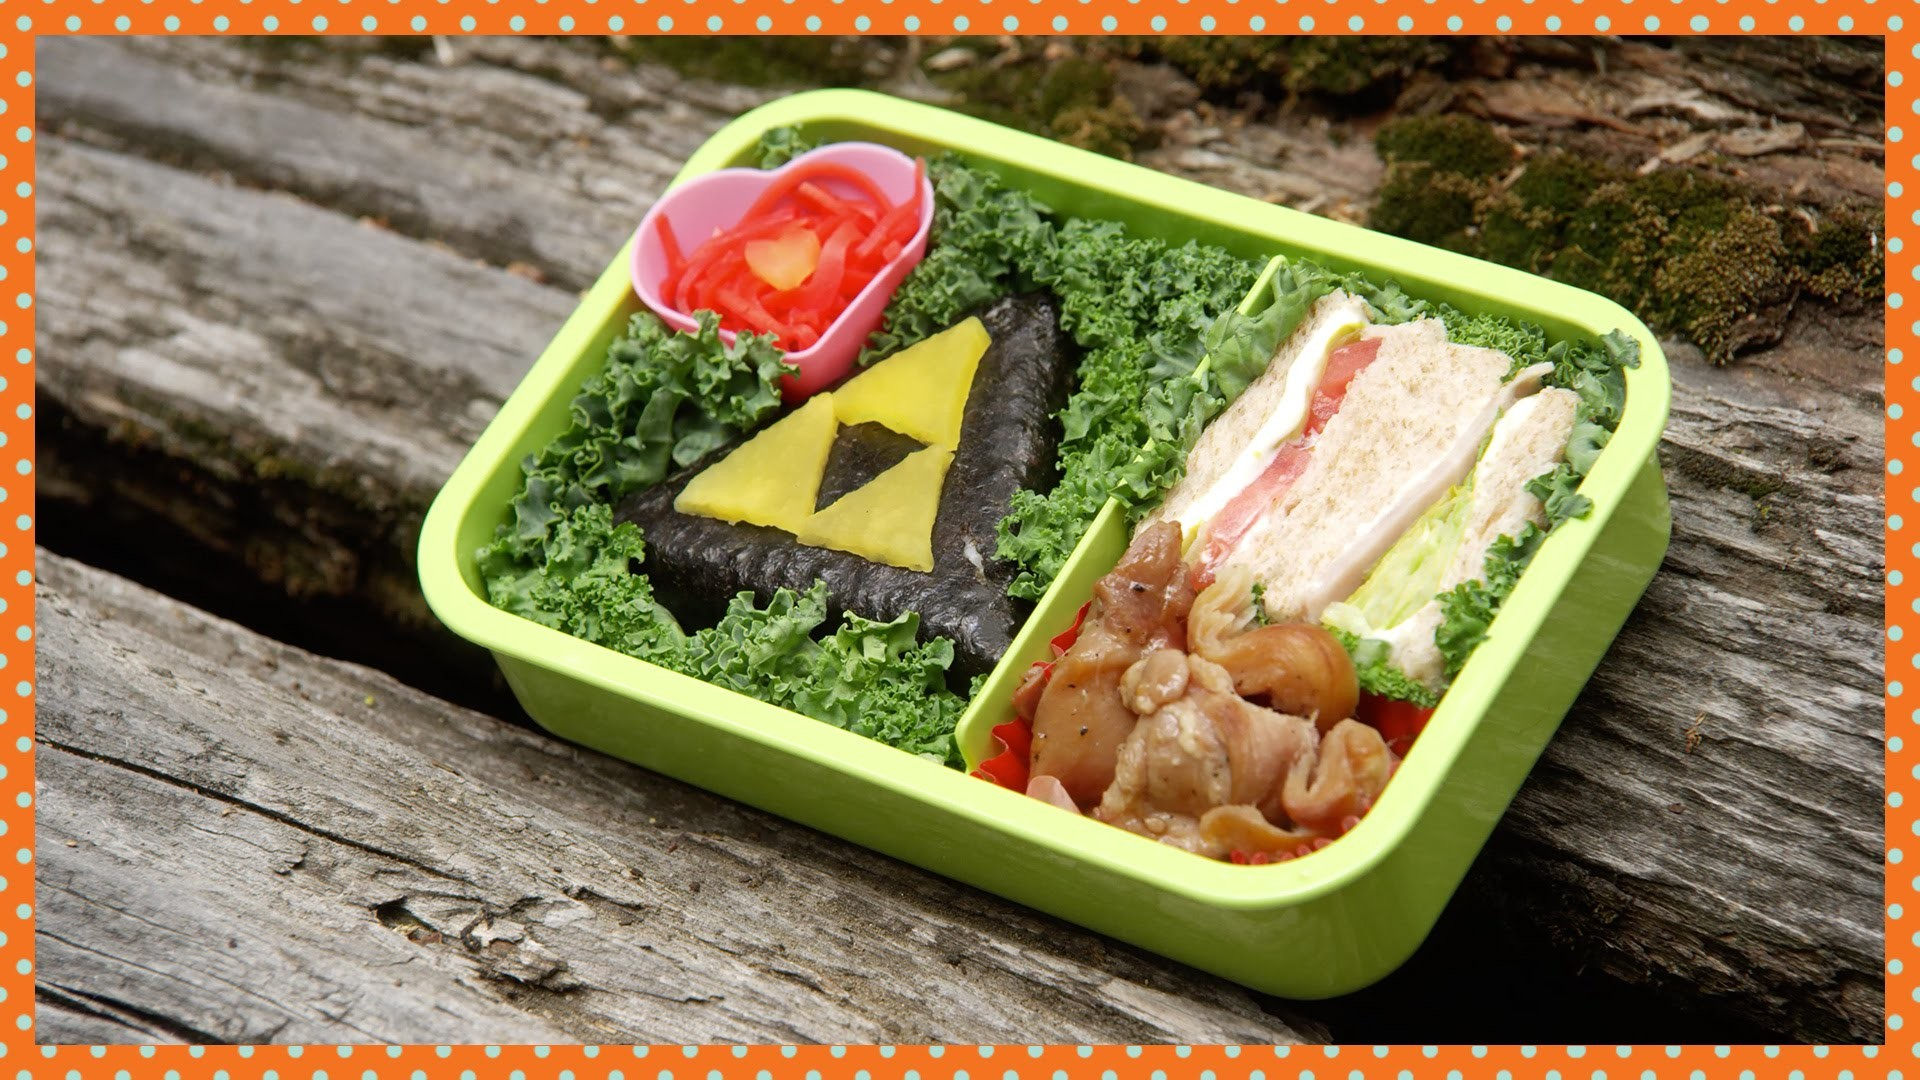 The Legend of Zelda Bento Box | Cooking